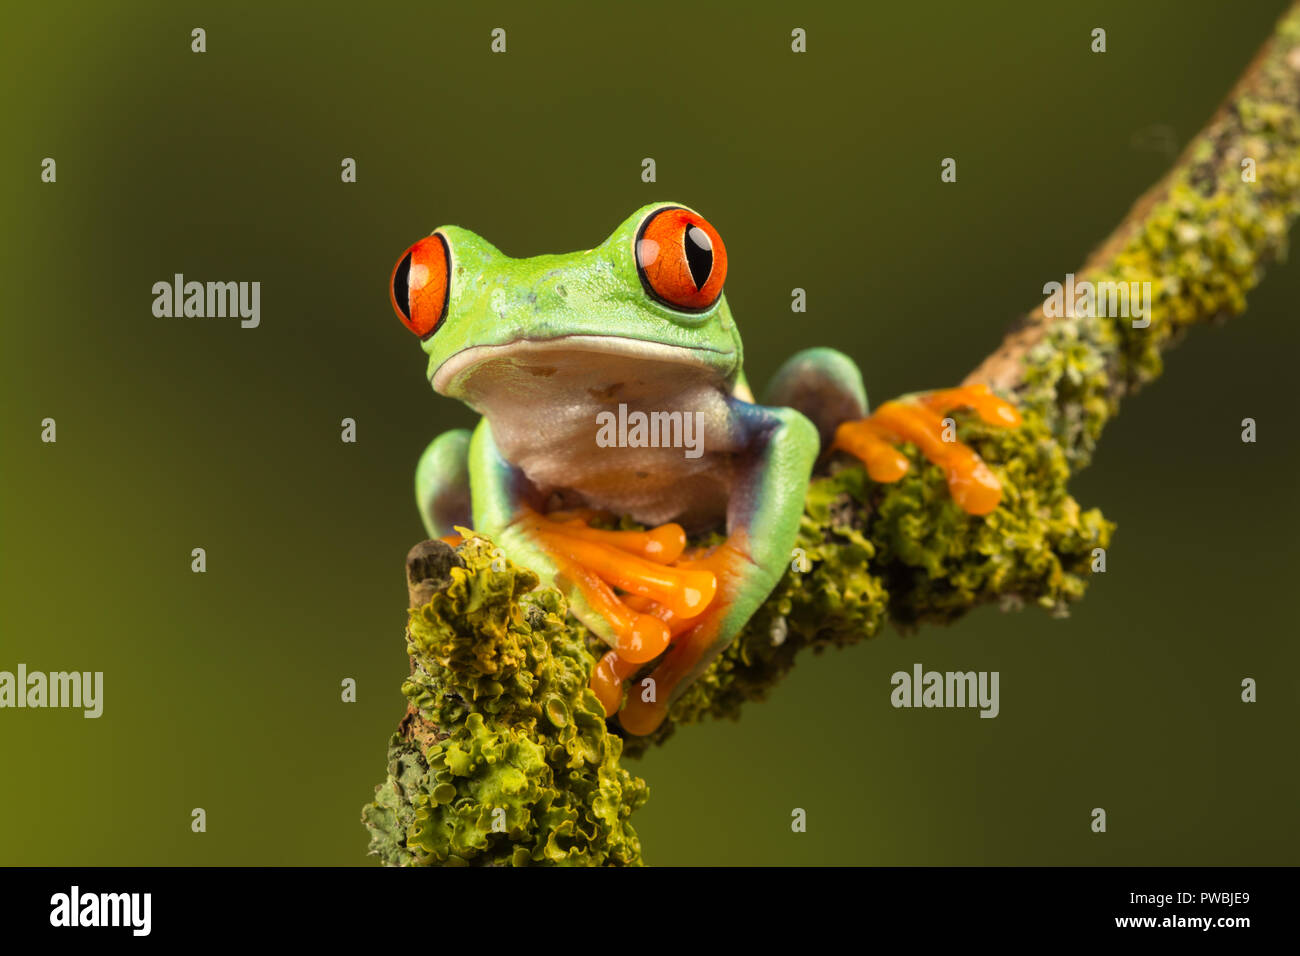 Close-up of red-eyed tree frog (Agalychnis callidryas), a colourful amphibian species, on a twig Stock Photo